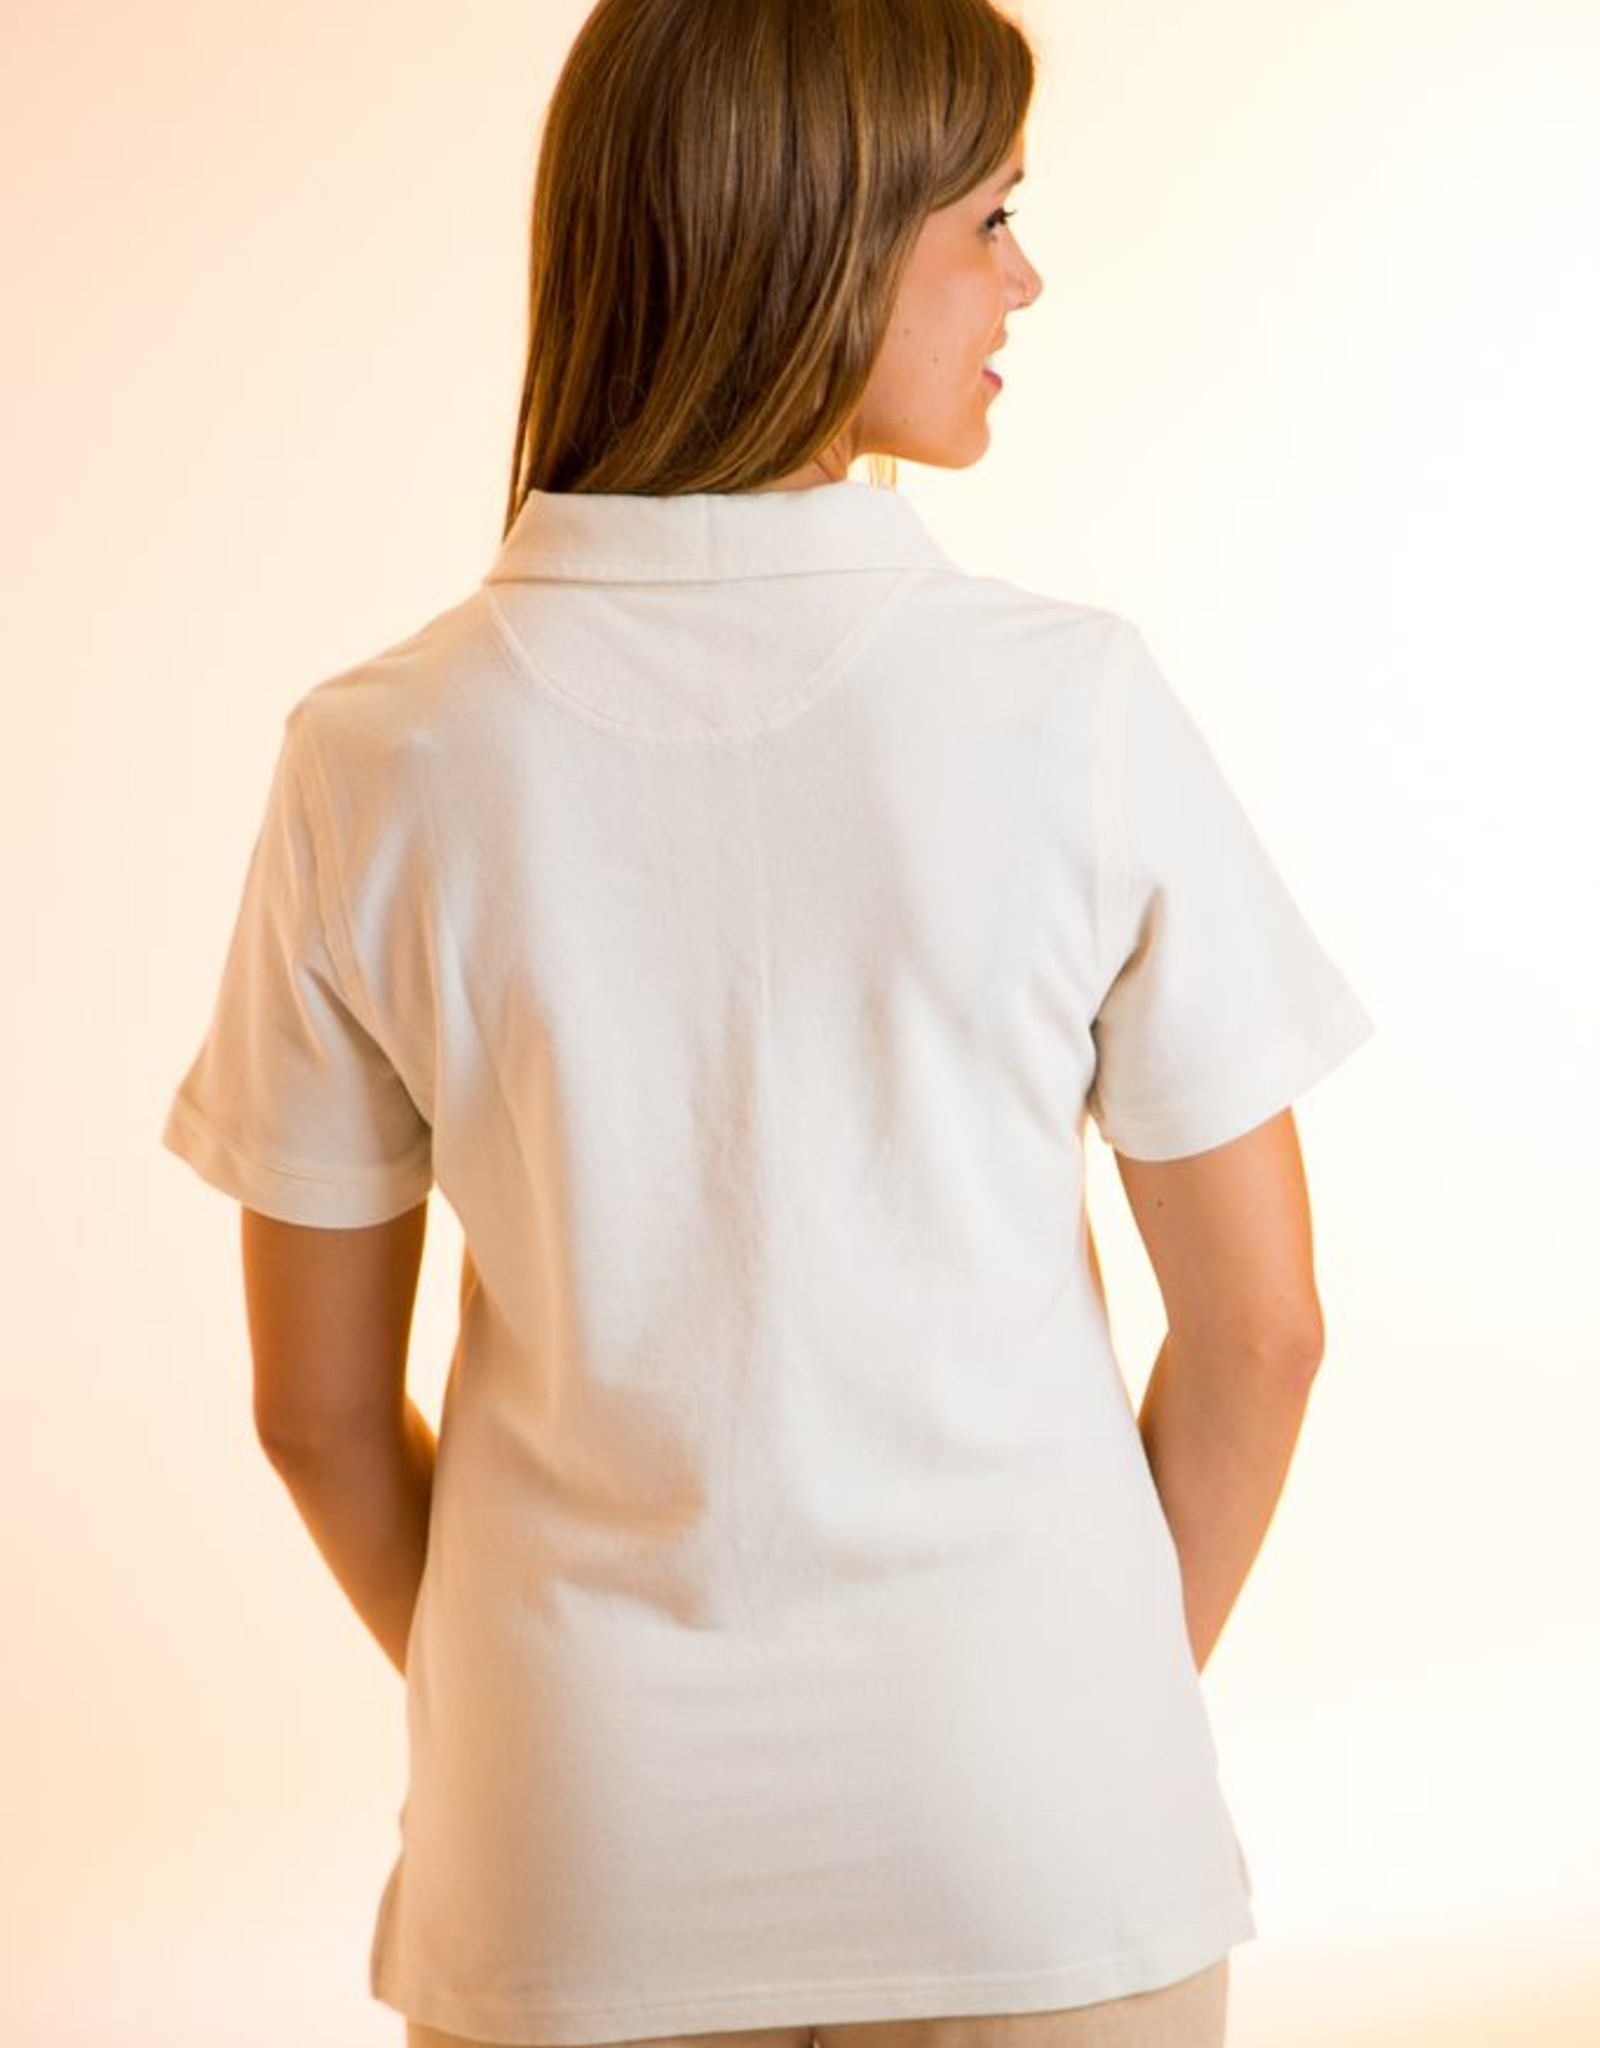 Women polo short sleeves and made with square weave fabric